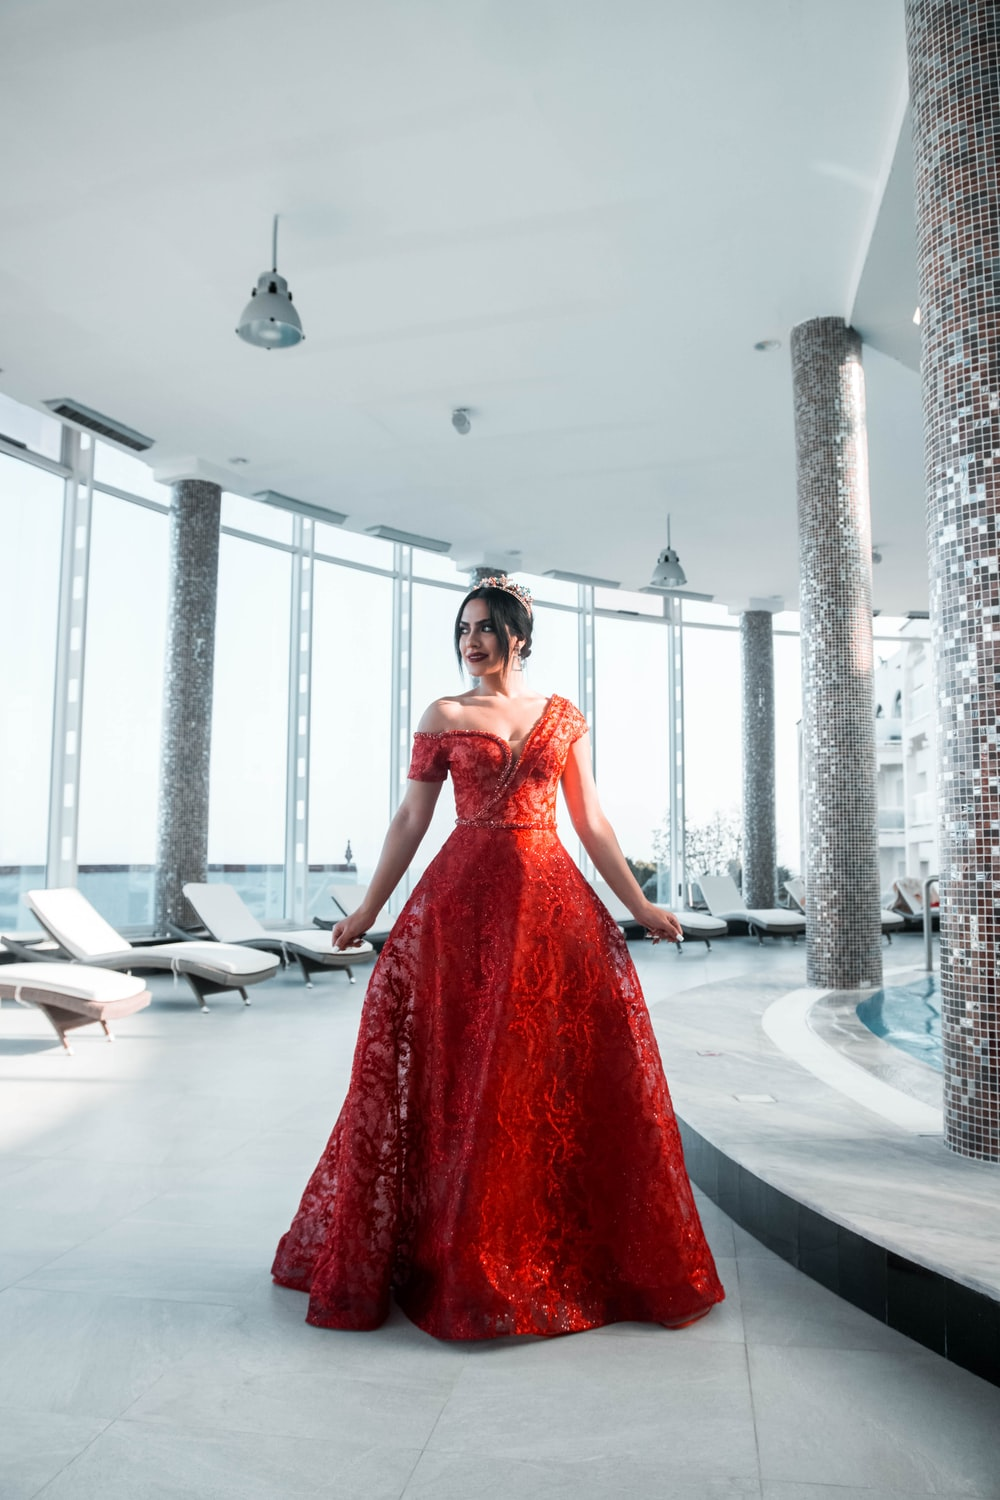 woman in red sleeveless dress standing on white floor